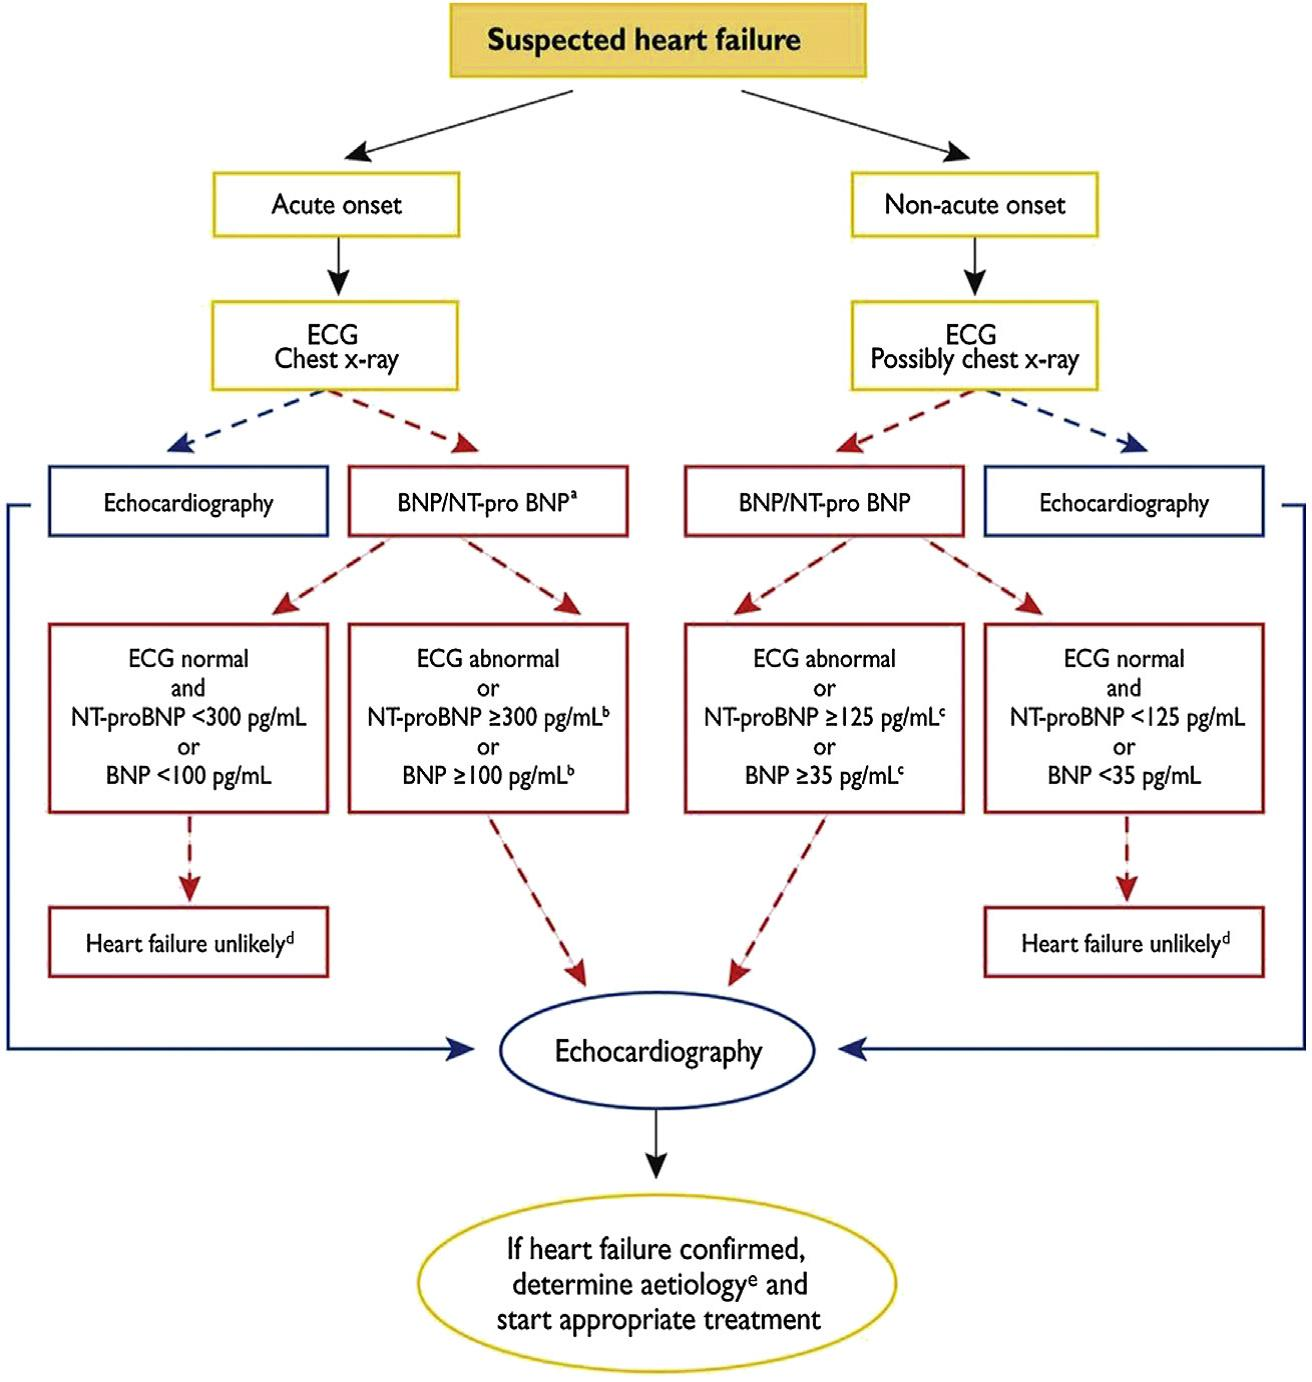 Diagnostic algorithm for suspected heart failure presenting either acutely or nonacutely